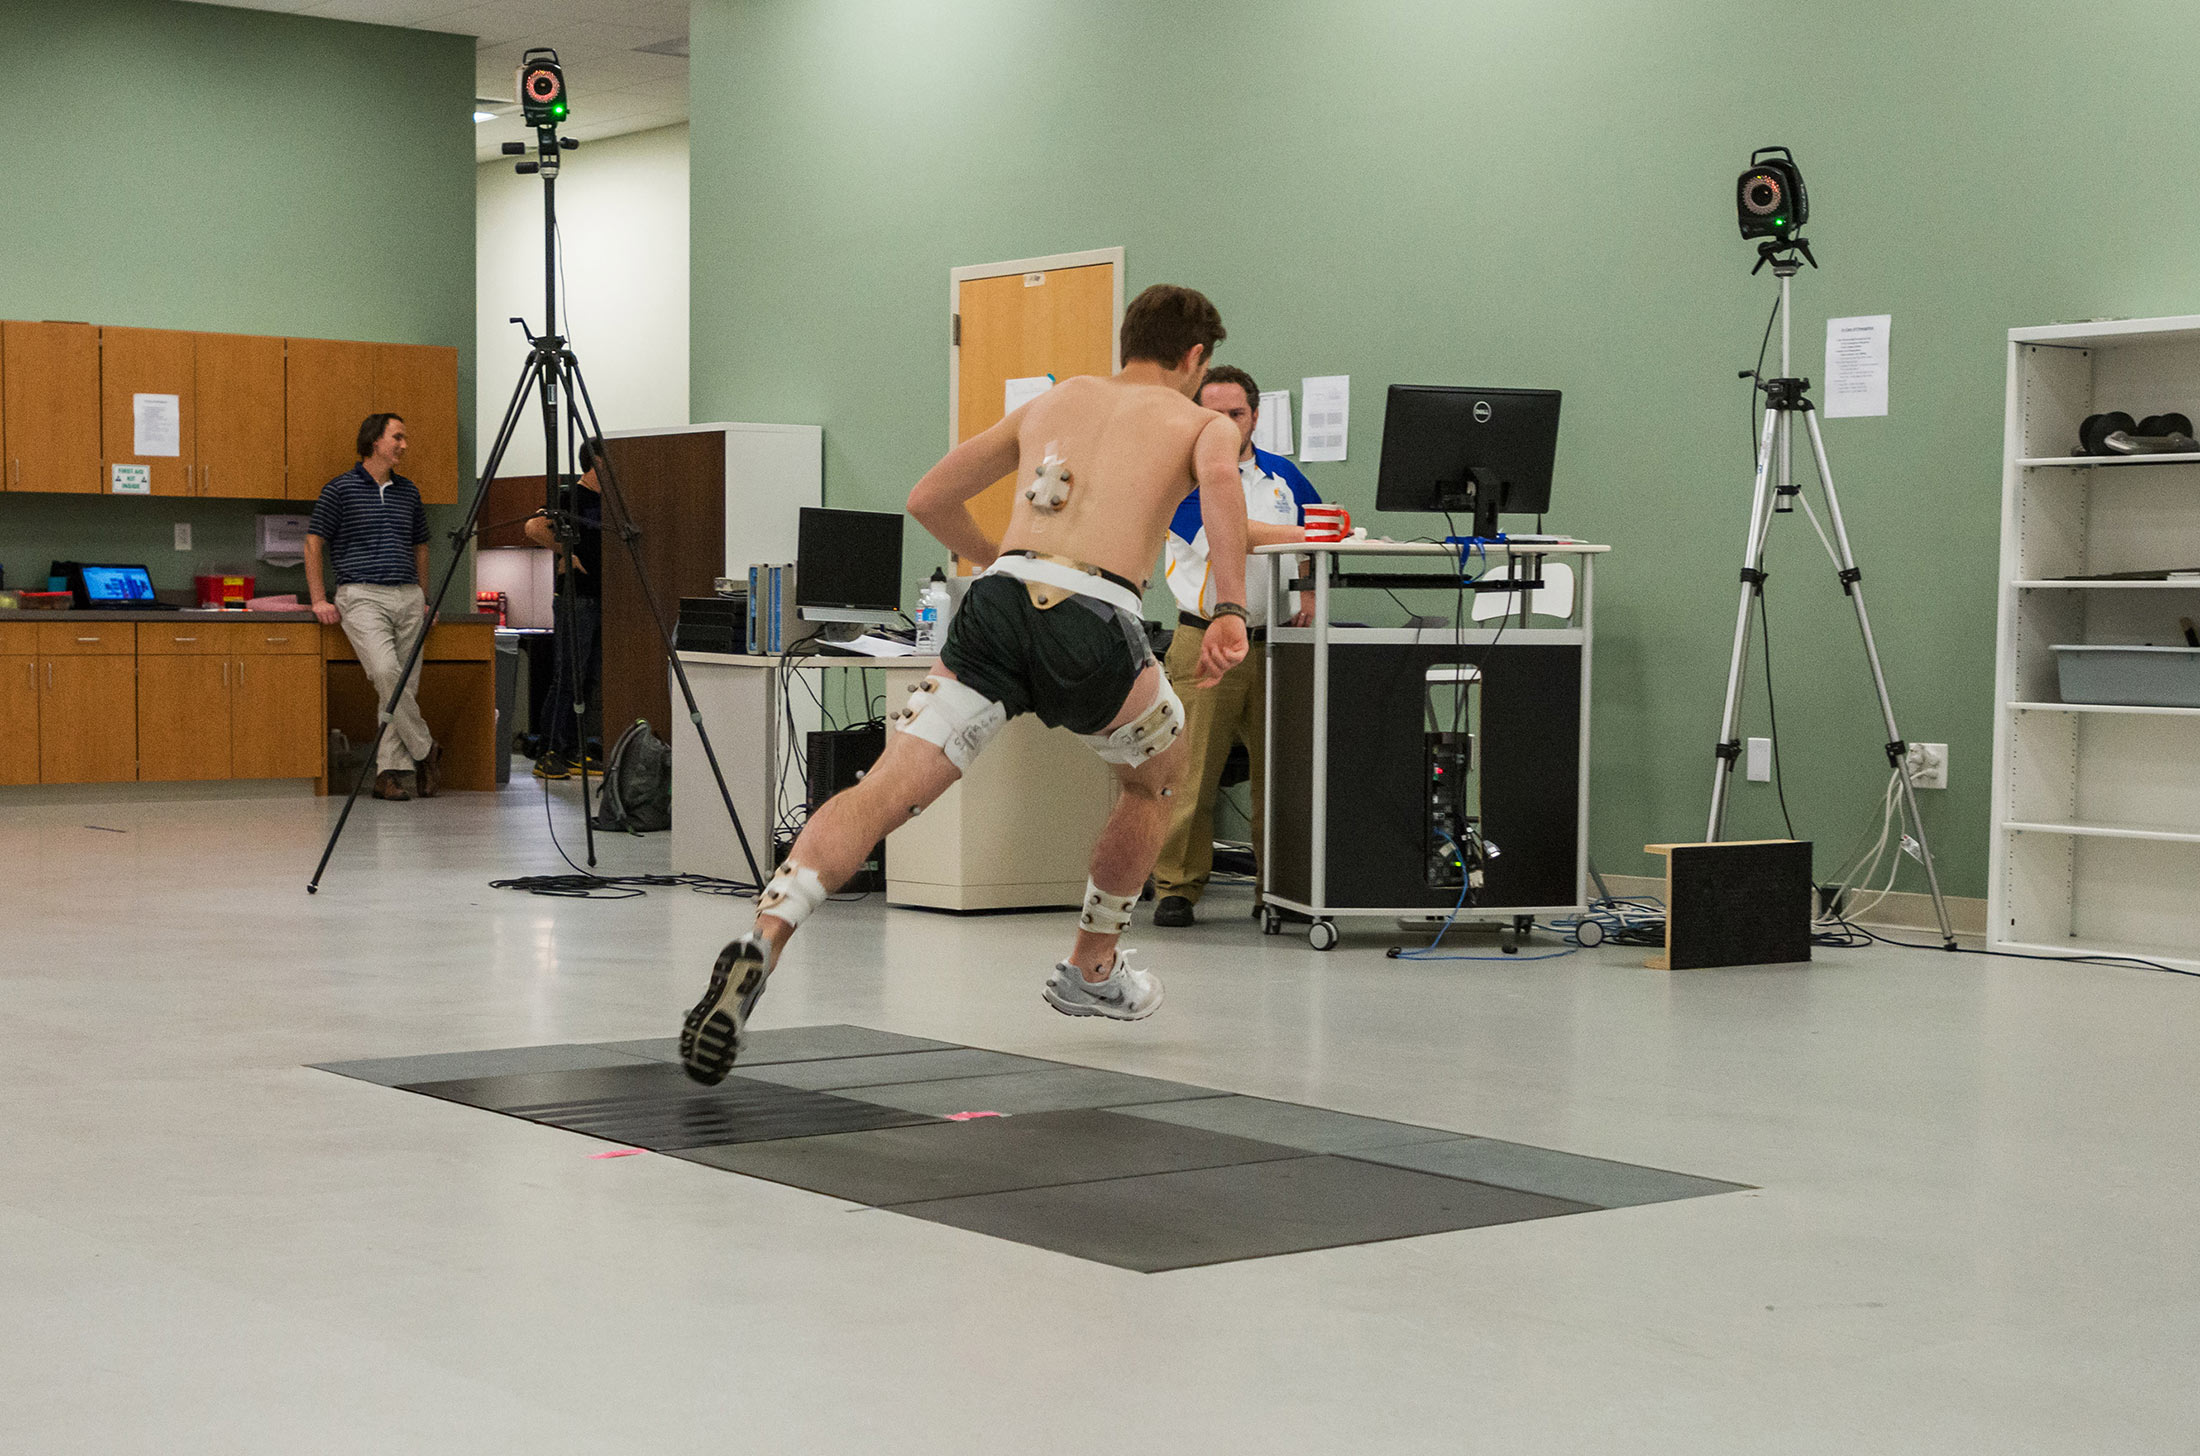 kinesiology college Kinesiology studies physical activity and human movement, and explores their impact on health, society, and quality of life students examine movement from the neuromechanical, physiological, psychological, and sociological perspectives.